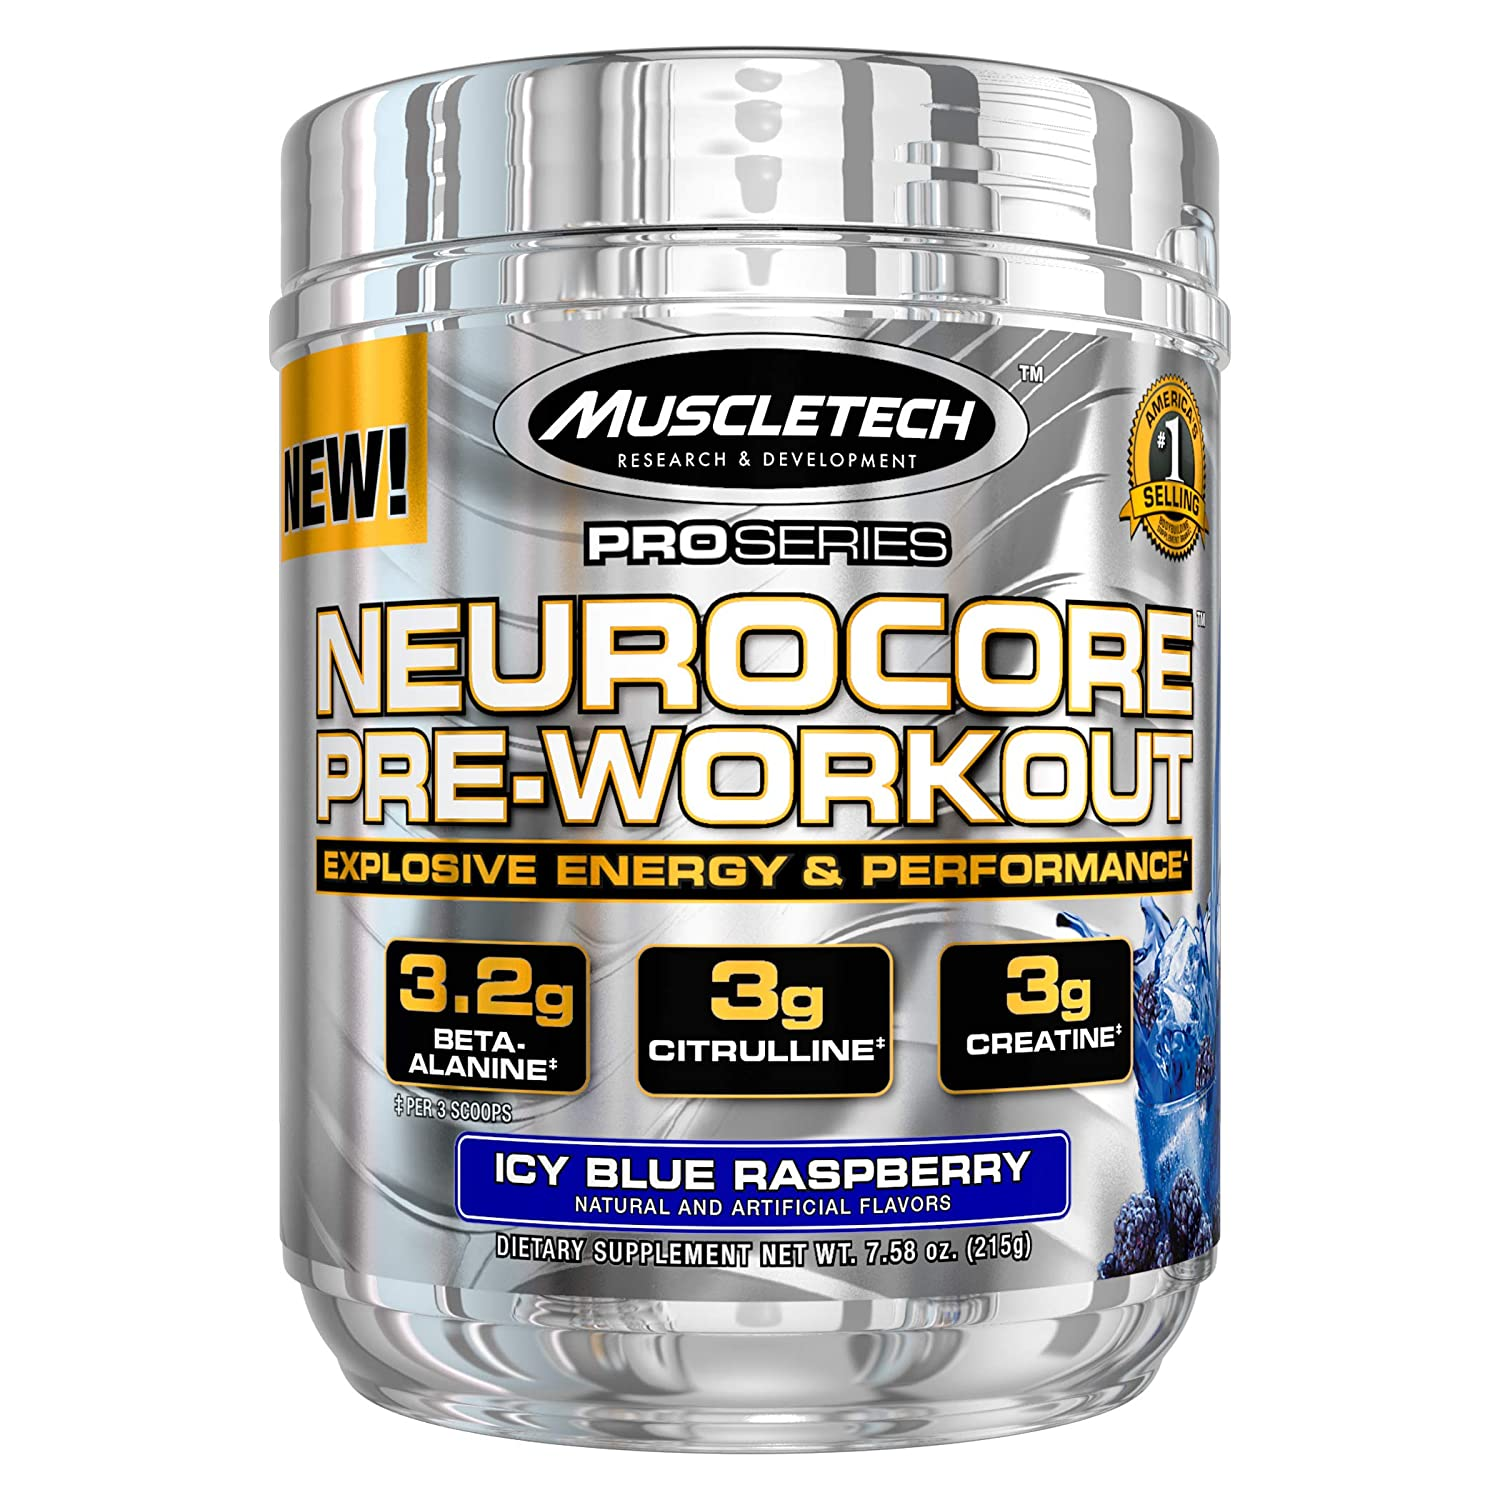 [50% off] Muscletech Proseries Neurocore Pre-Workout (50 Servings, 3.2 Beta Alanine, 3g Citrulline, 3g Creatine) - 215g (Icy Blue Raspberry)